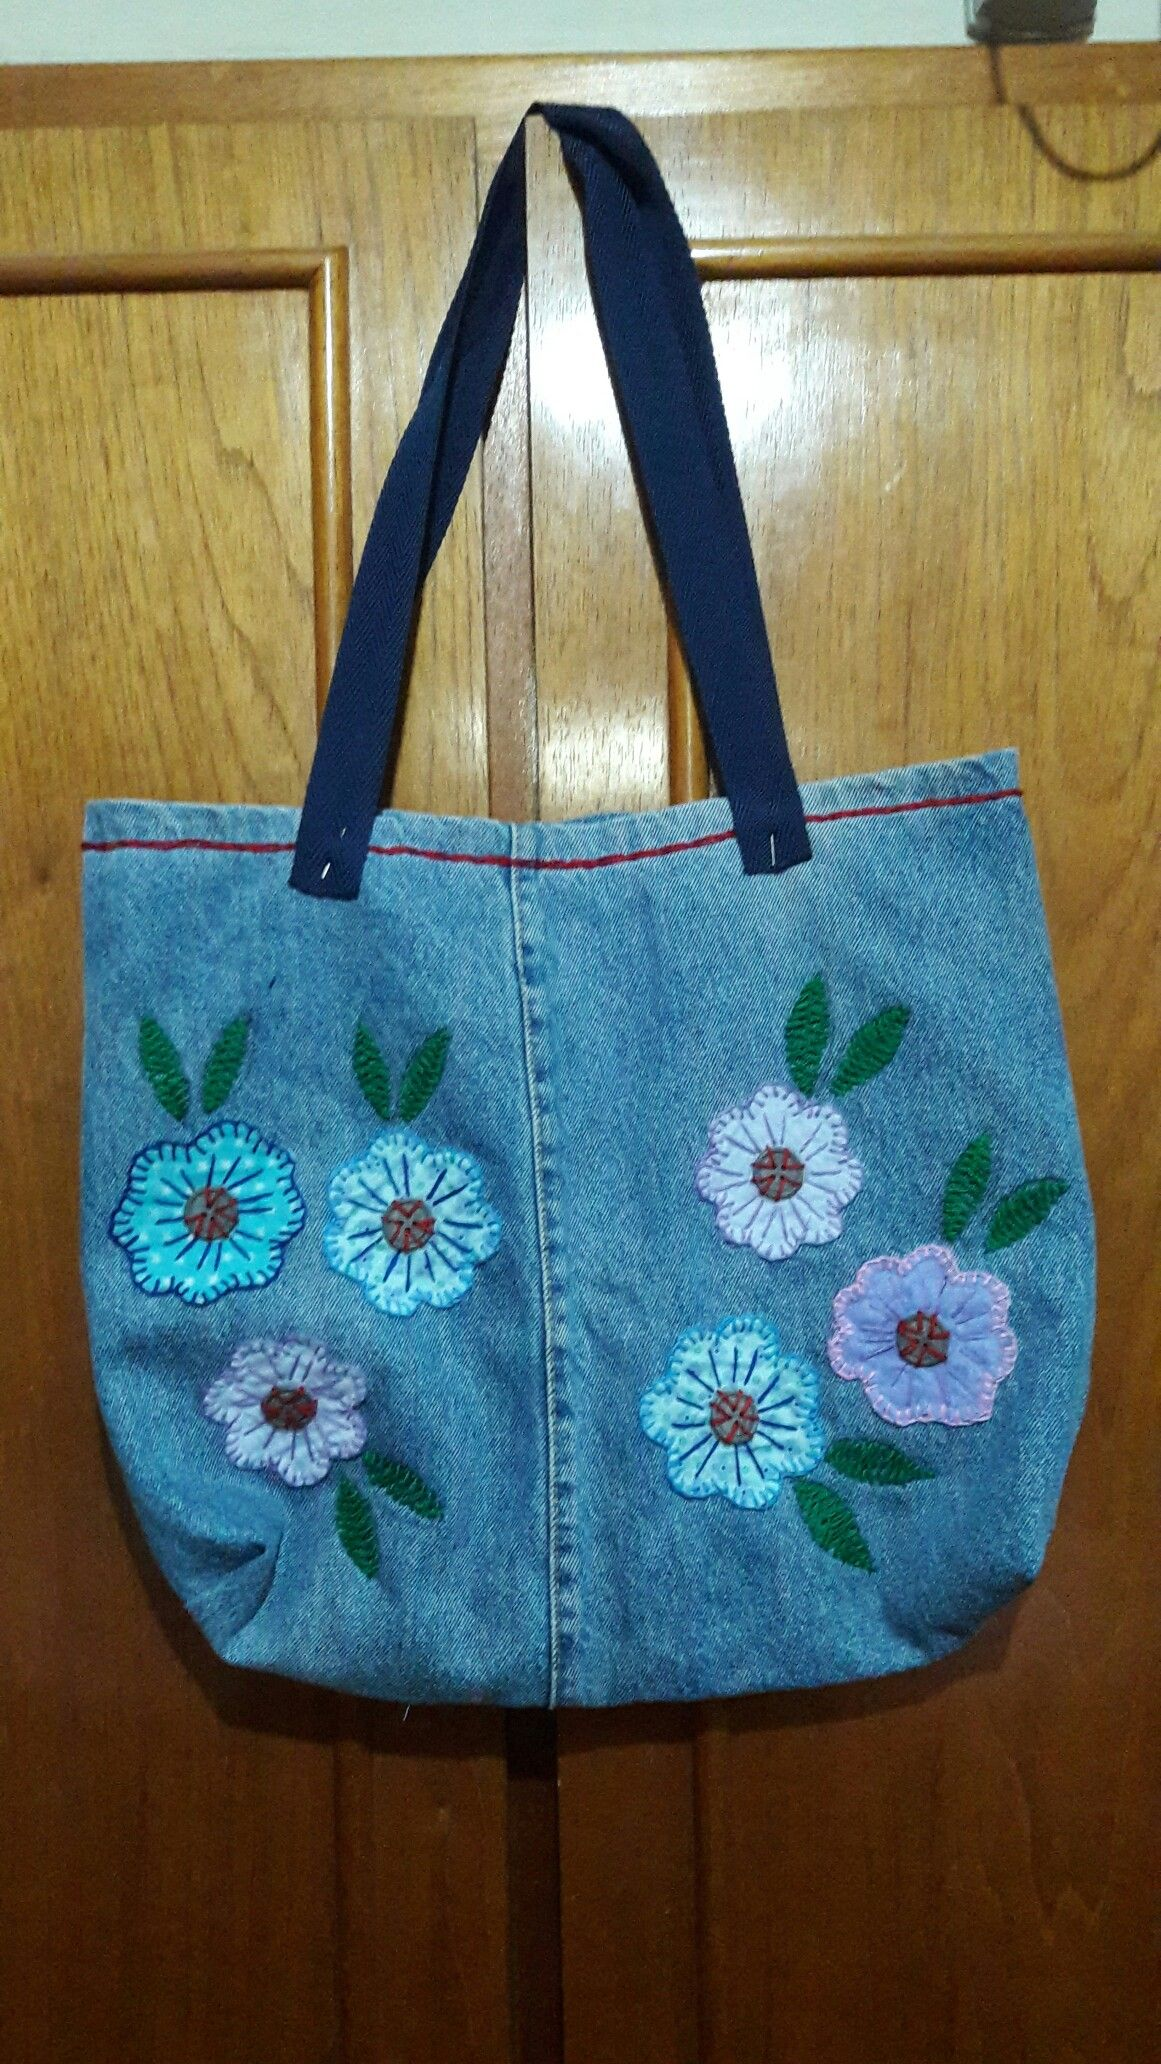 Photo of Bolsa de perna de calça  jeans.